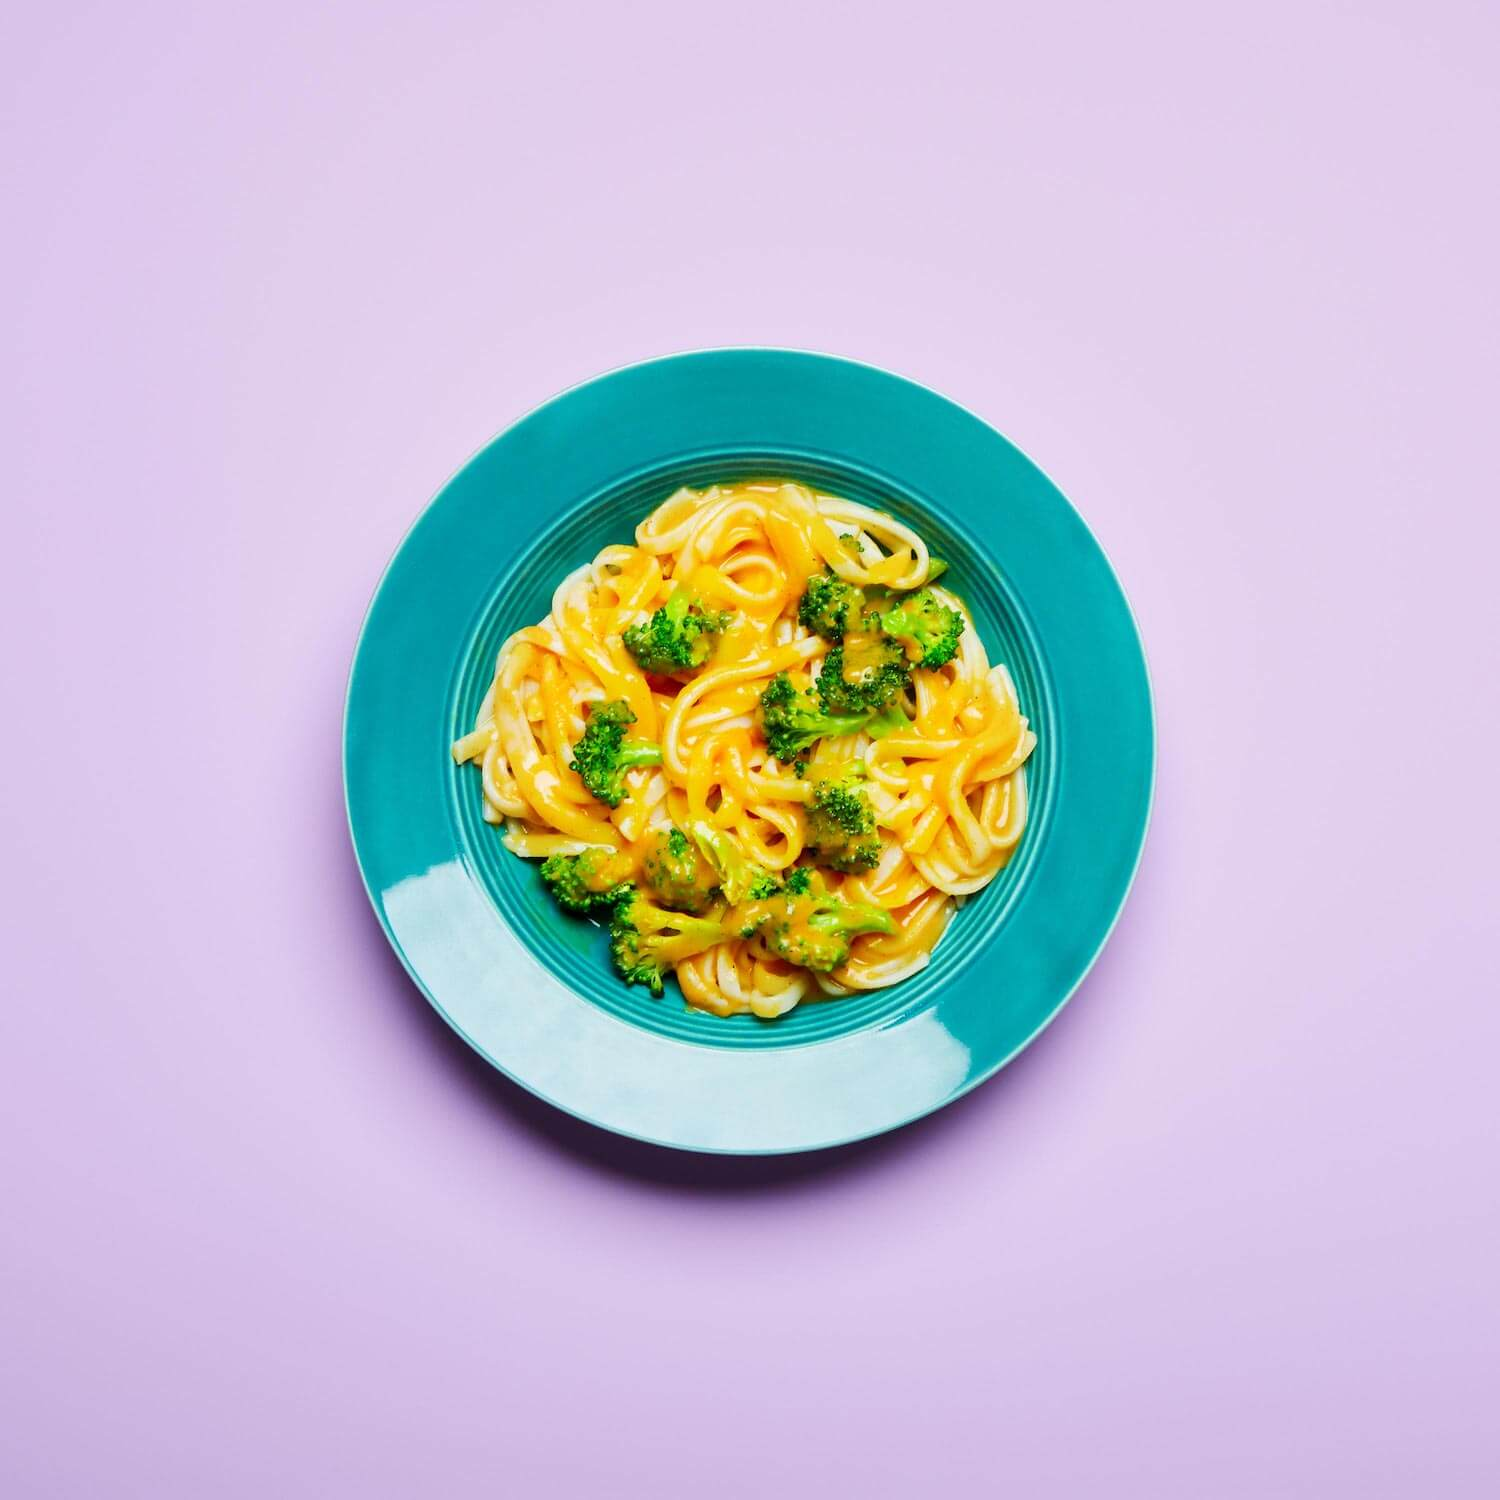 Creamy Butternut Squash Noodles in a dish on a lilac background.